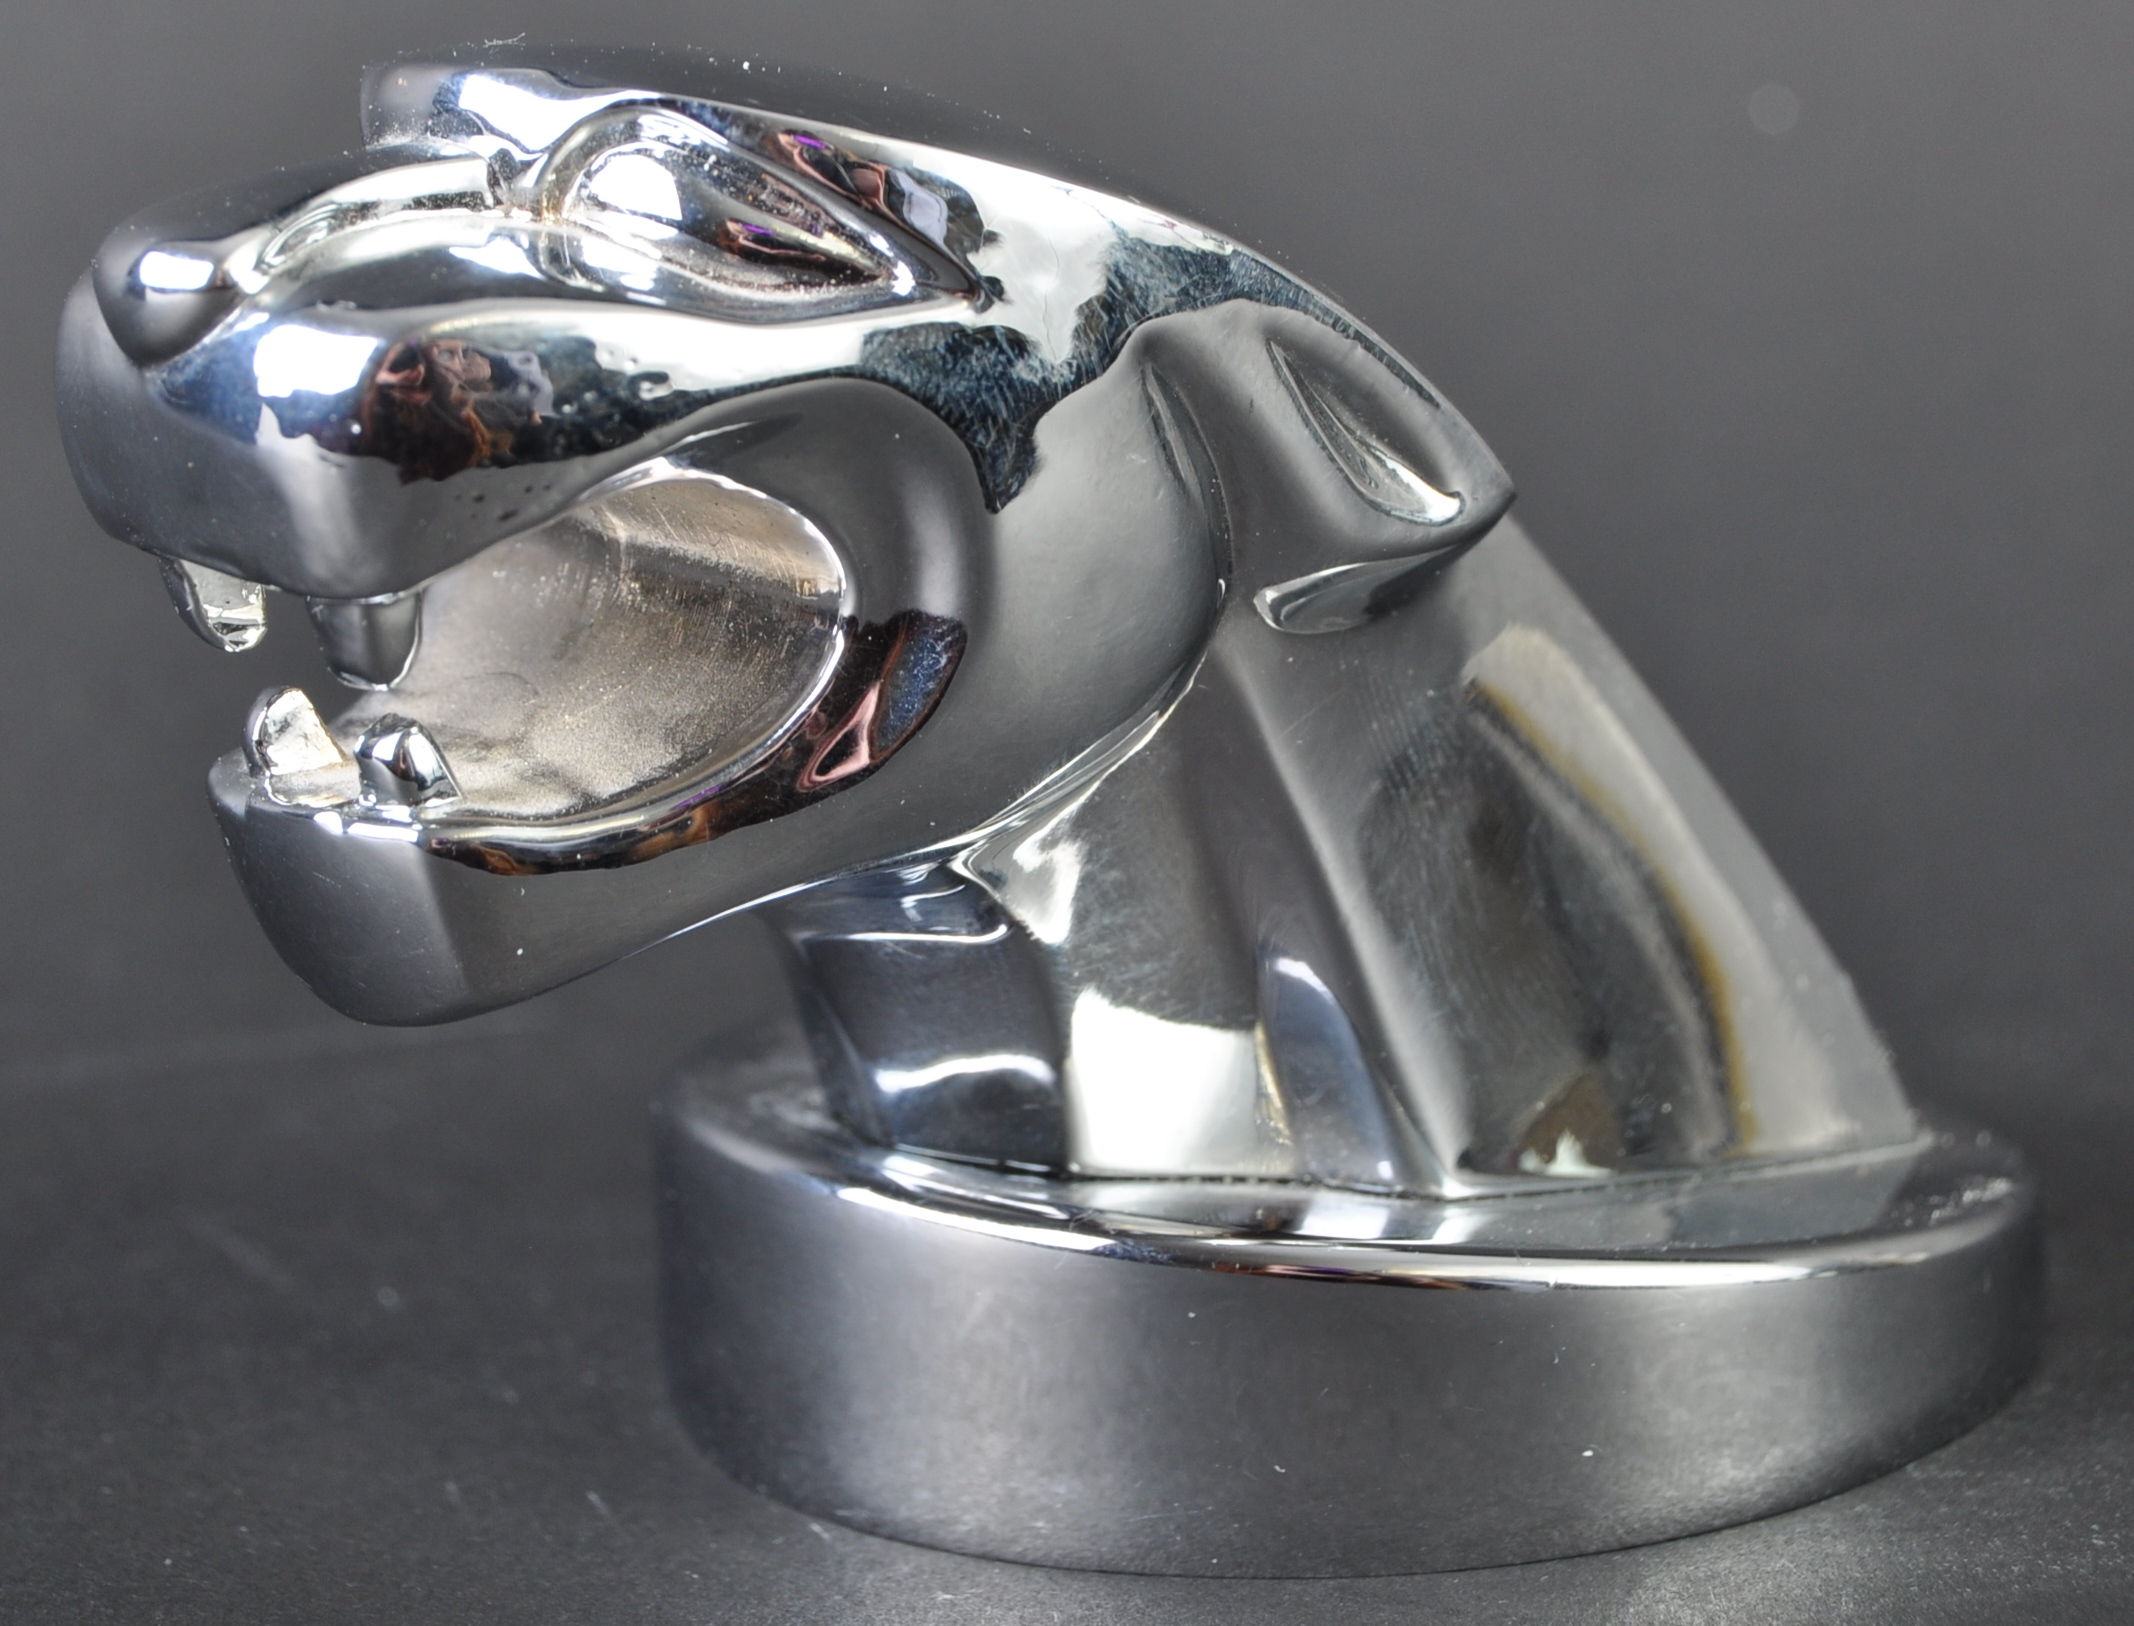 JAGUAR - ORIGINAL CHROME MASCOT BOTTLE OPENER